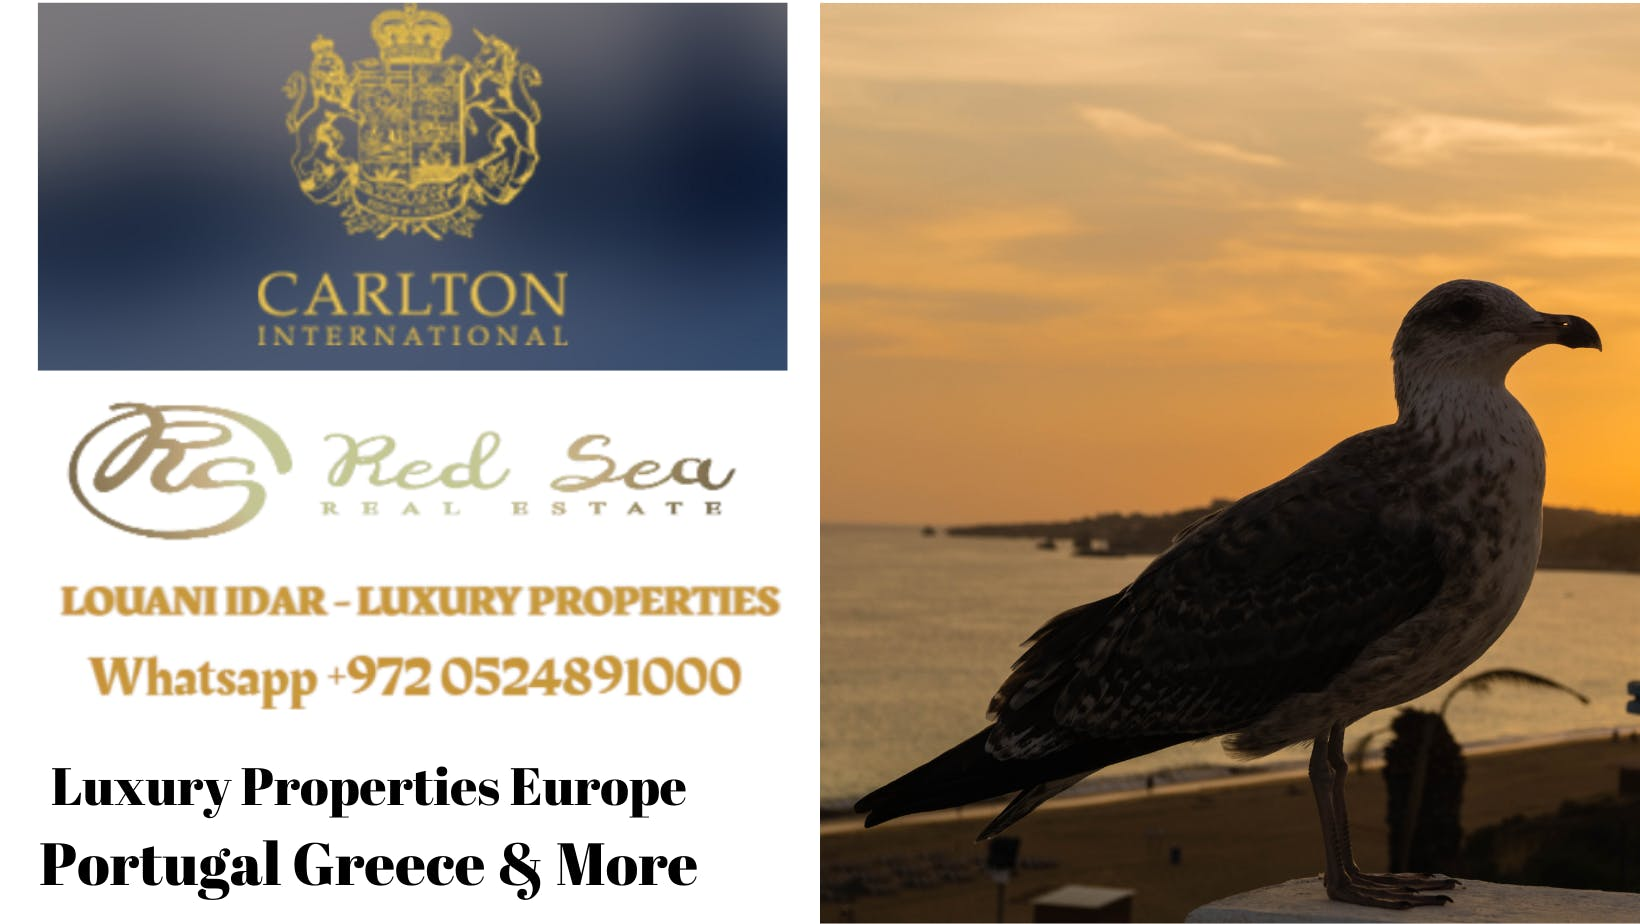 Luxury Real Estate For Sale Portugal-Greece-Europe